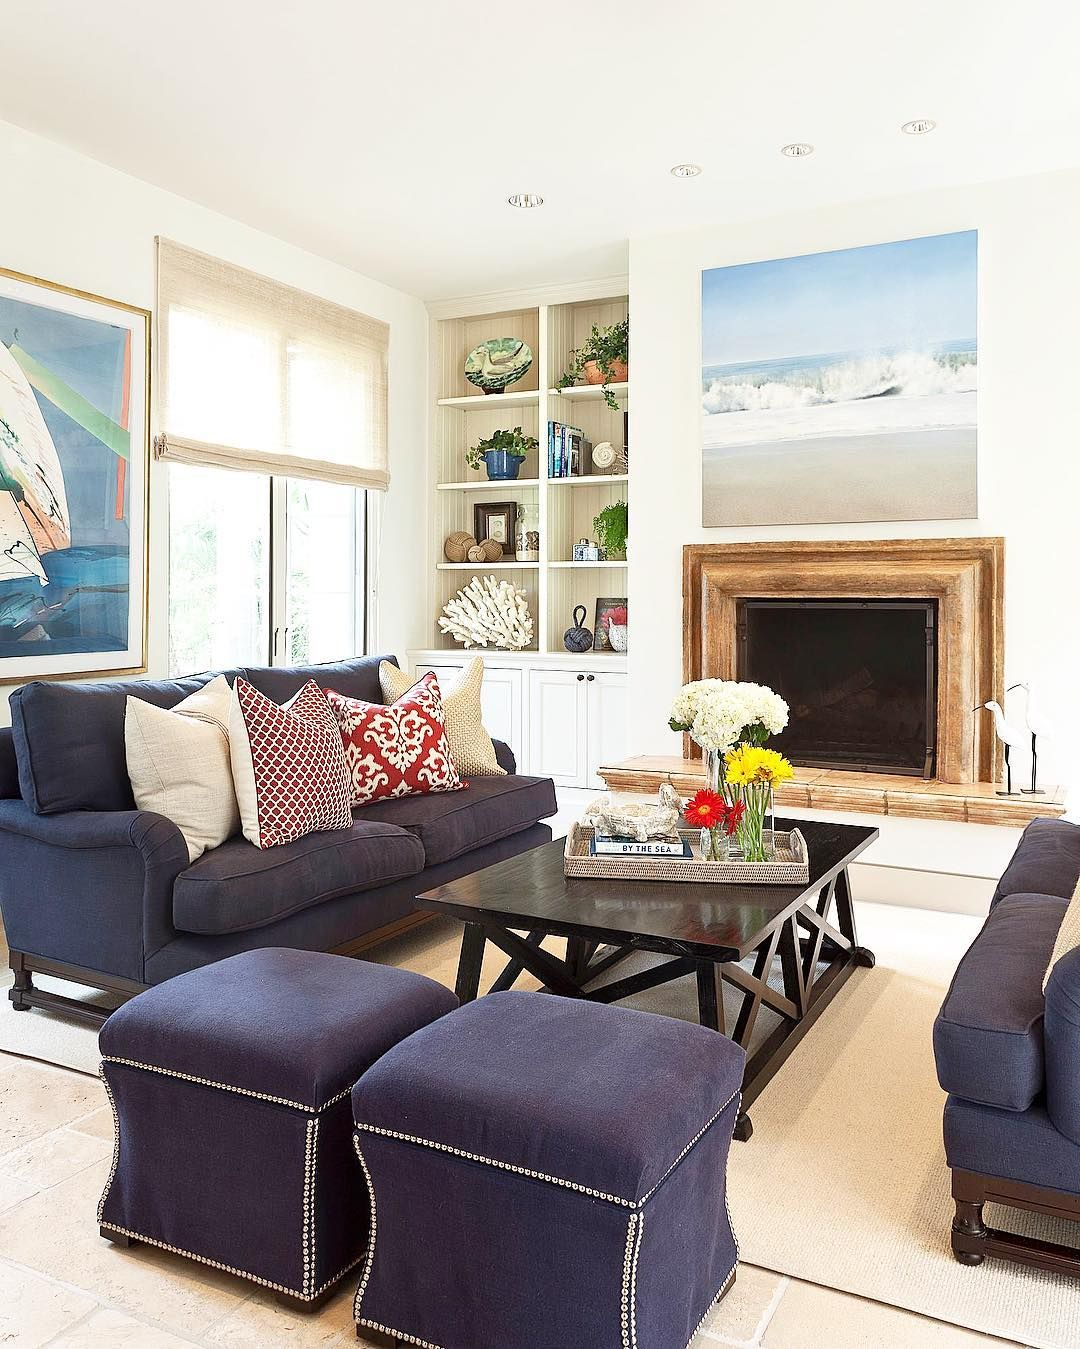 Living Room Decorating And Designs By Tina Barclay: Another Angle Of This Gorgeous Living Room Design